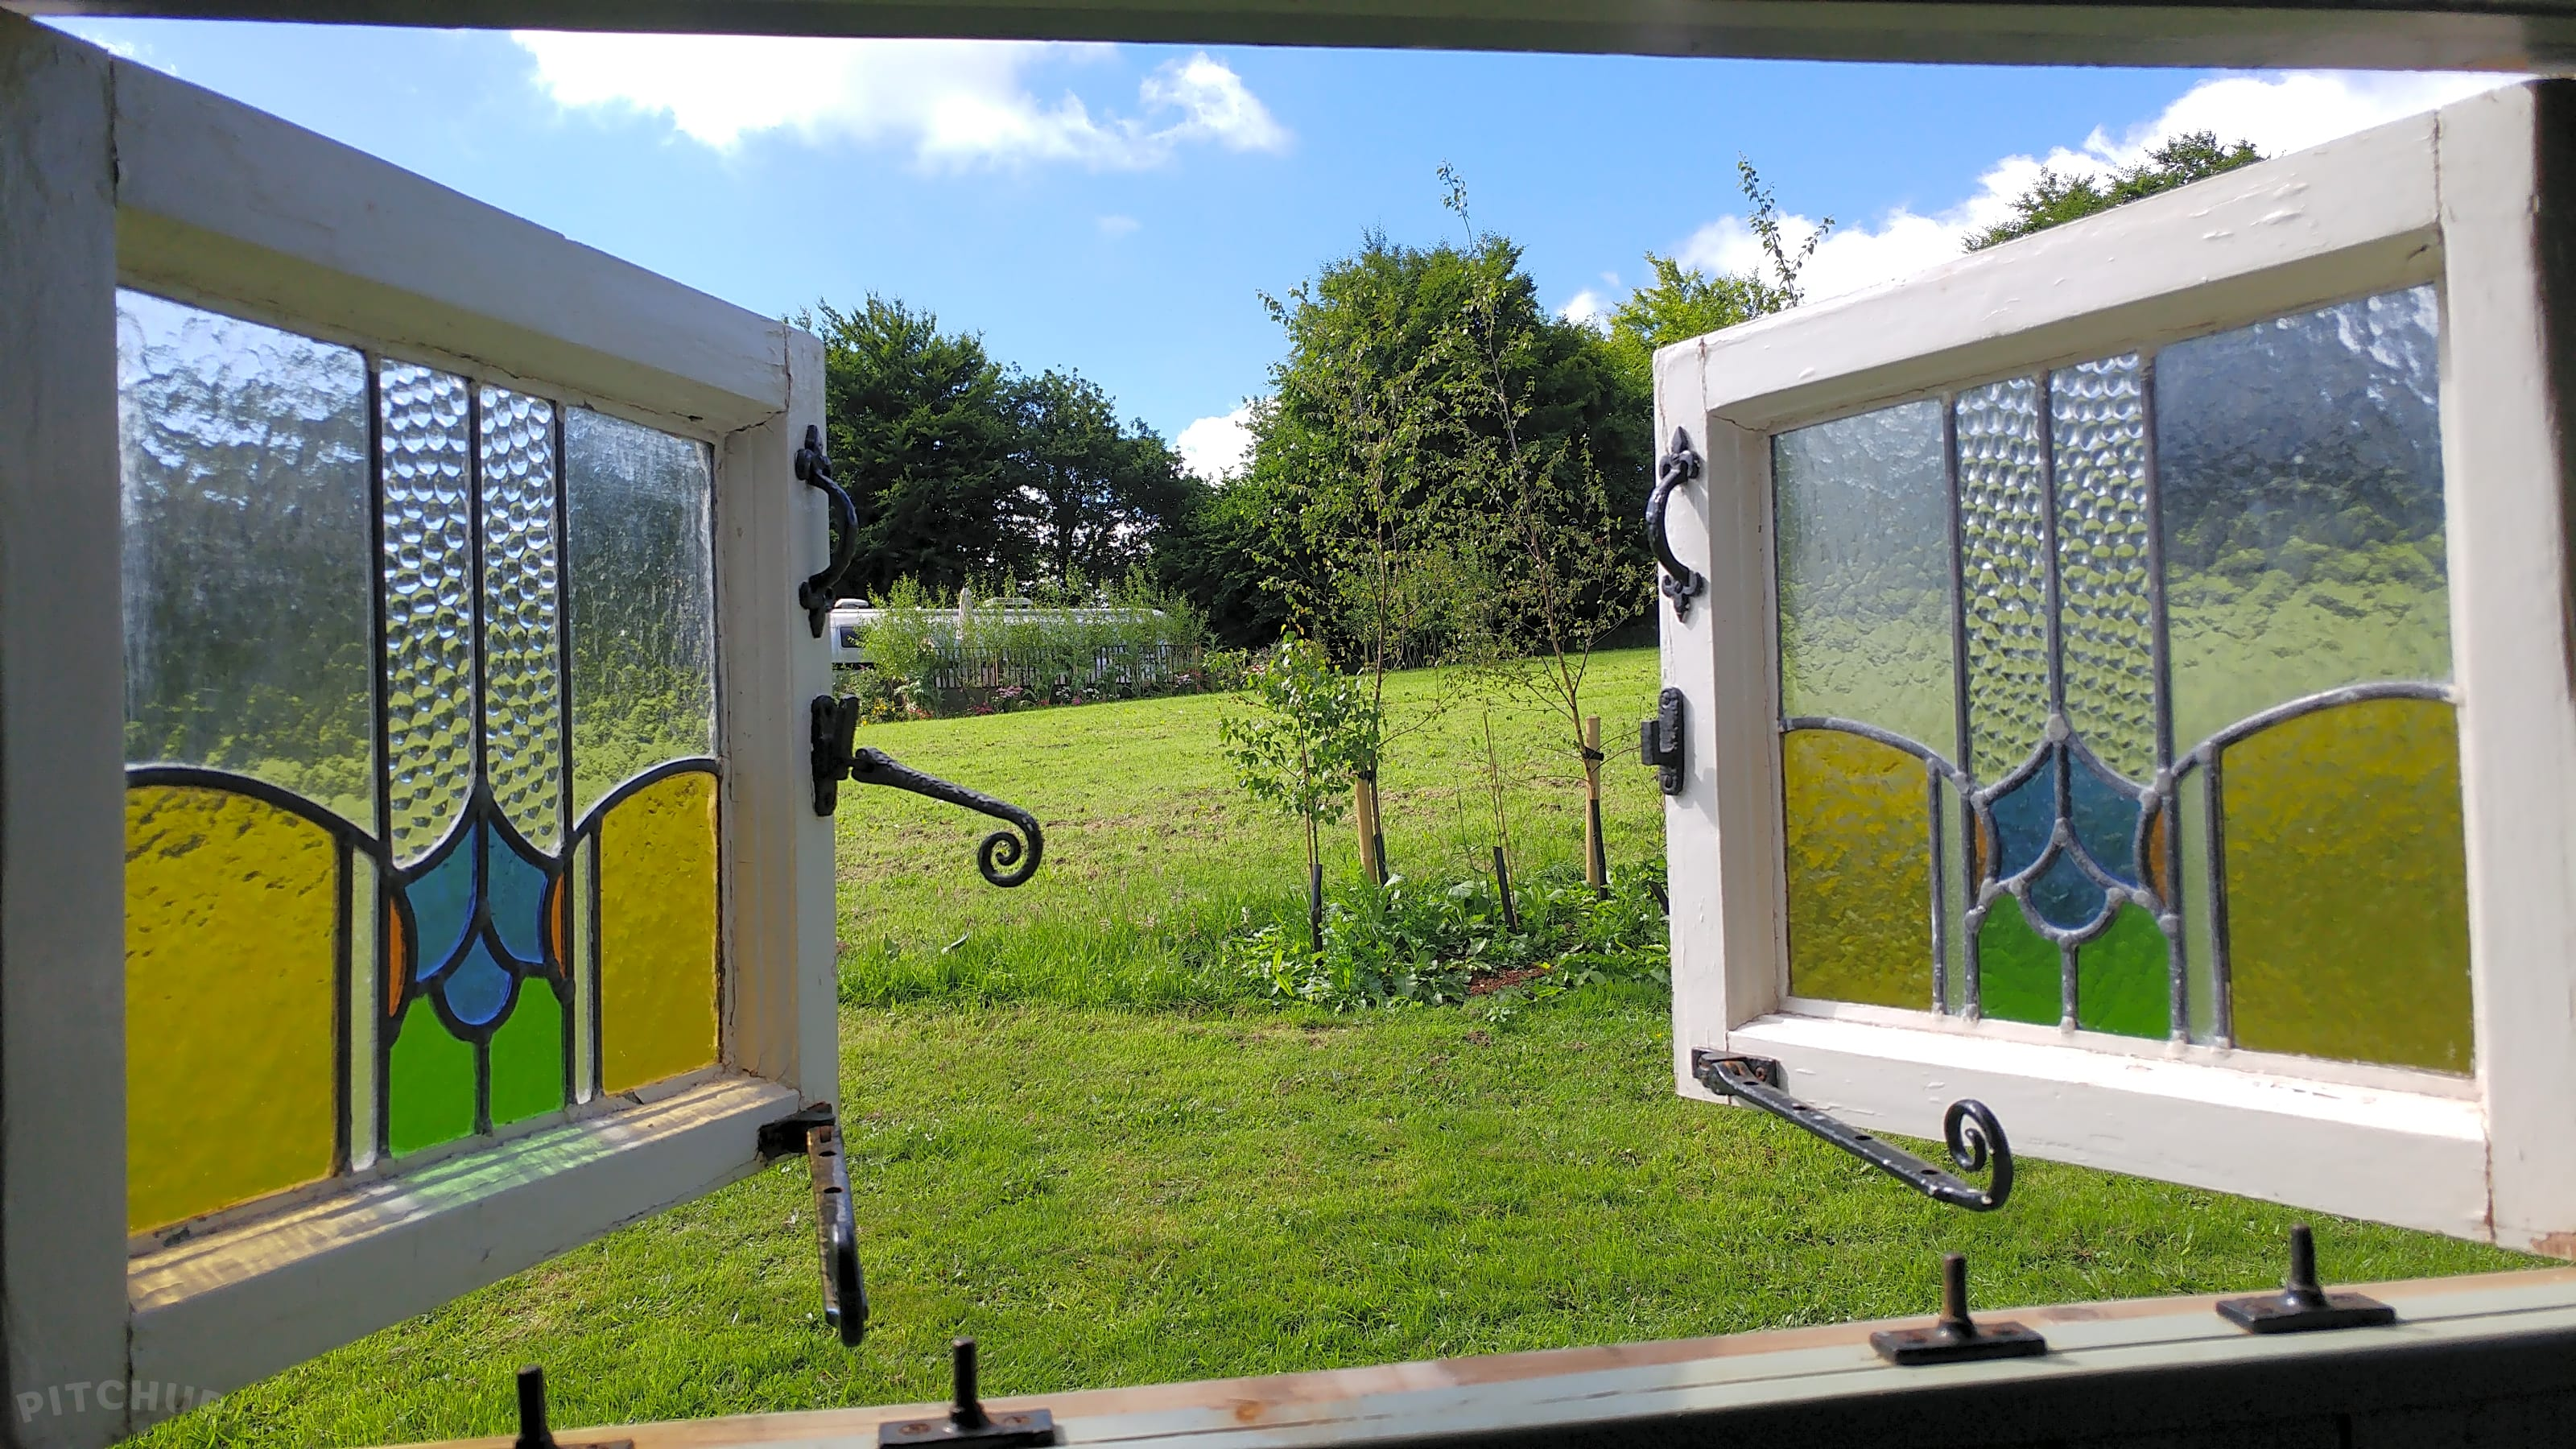 Hideaway Camping, Okehampton - Updated 2019 prices - Pitchup®